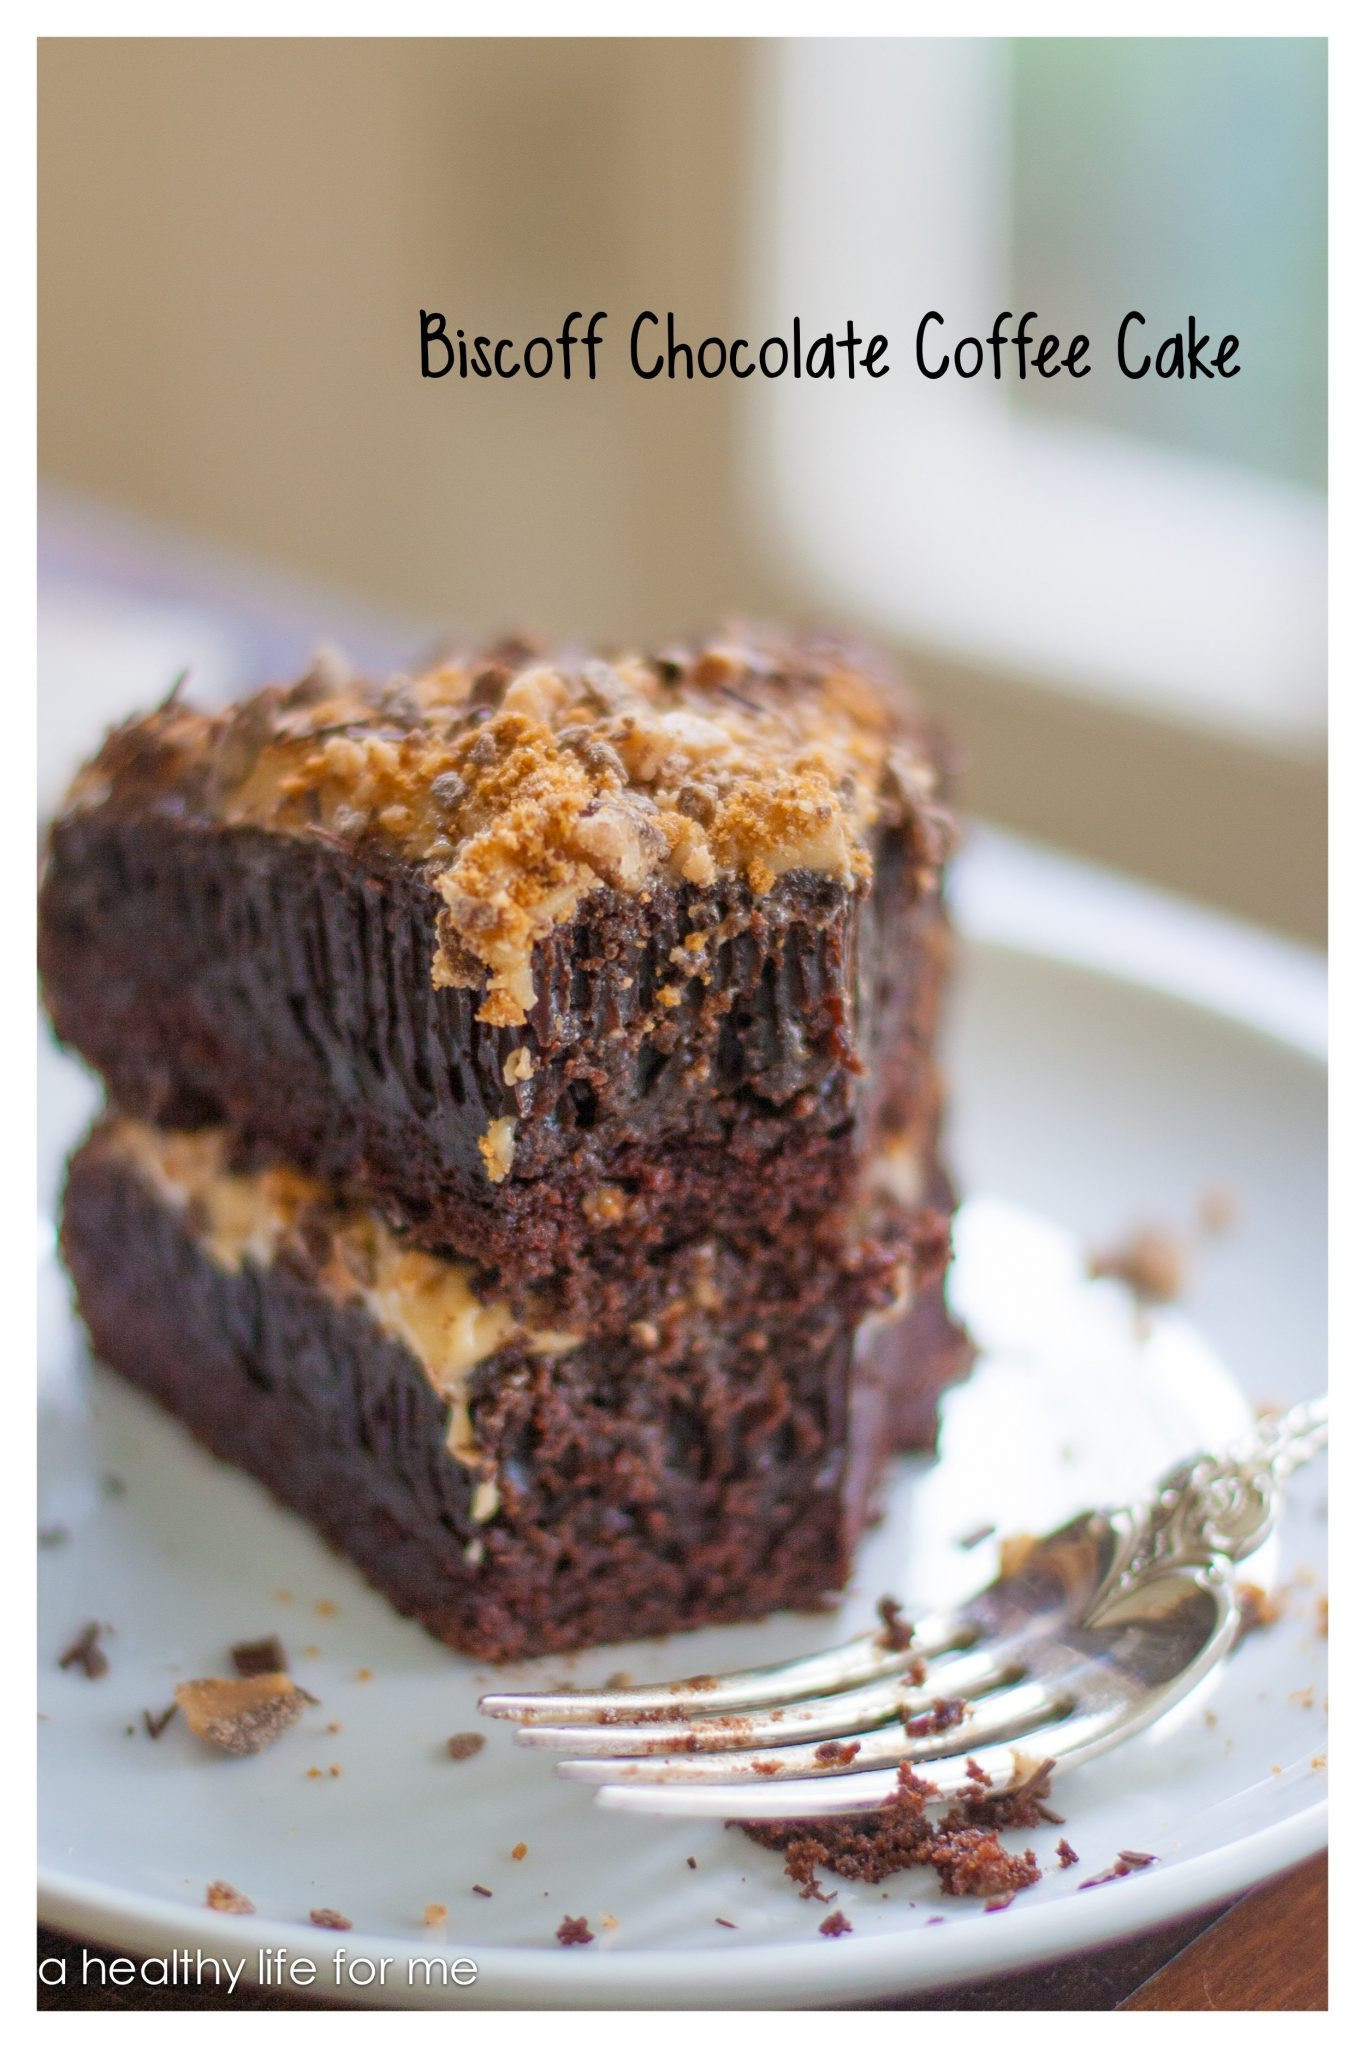 Healthy Coffee Cake  Biscoff Chocolate Coffee Cake A Healthy Life For Me